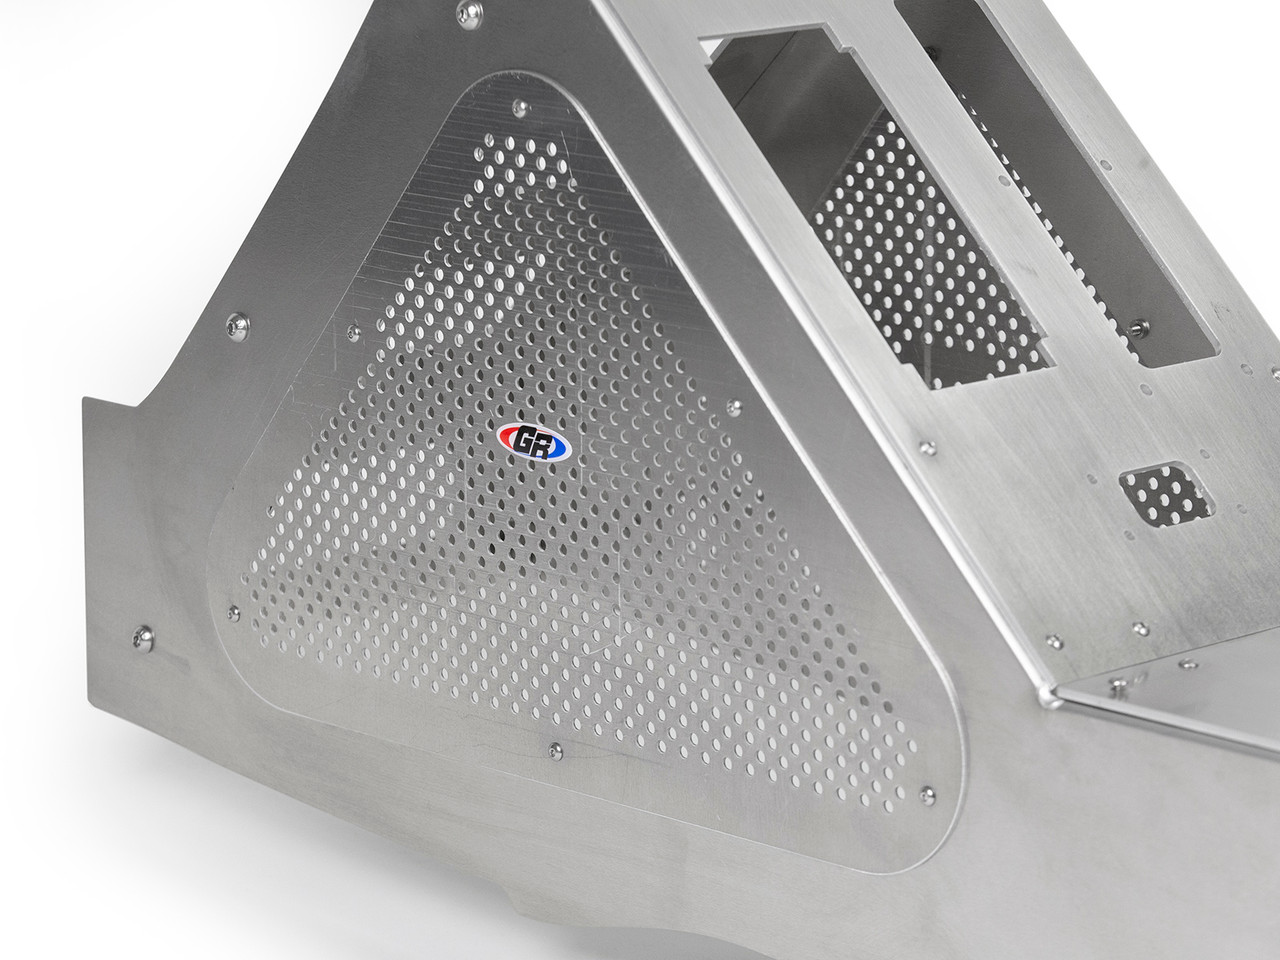 Mesh access panels keep your electronics cool.